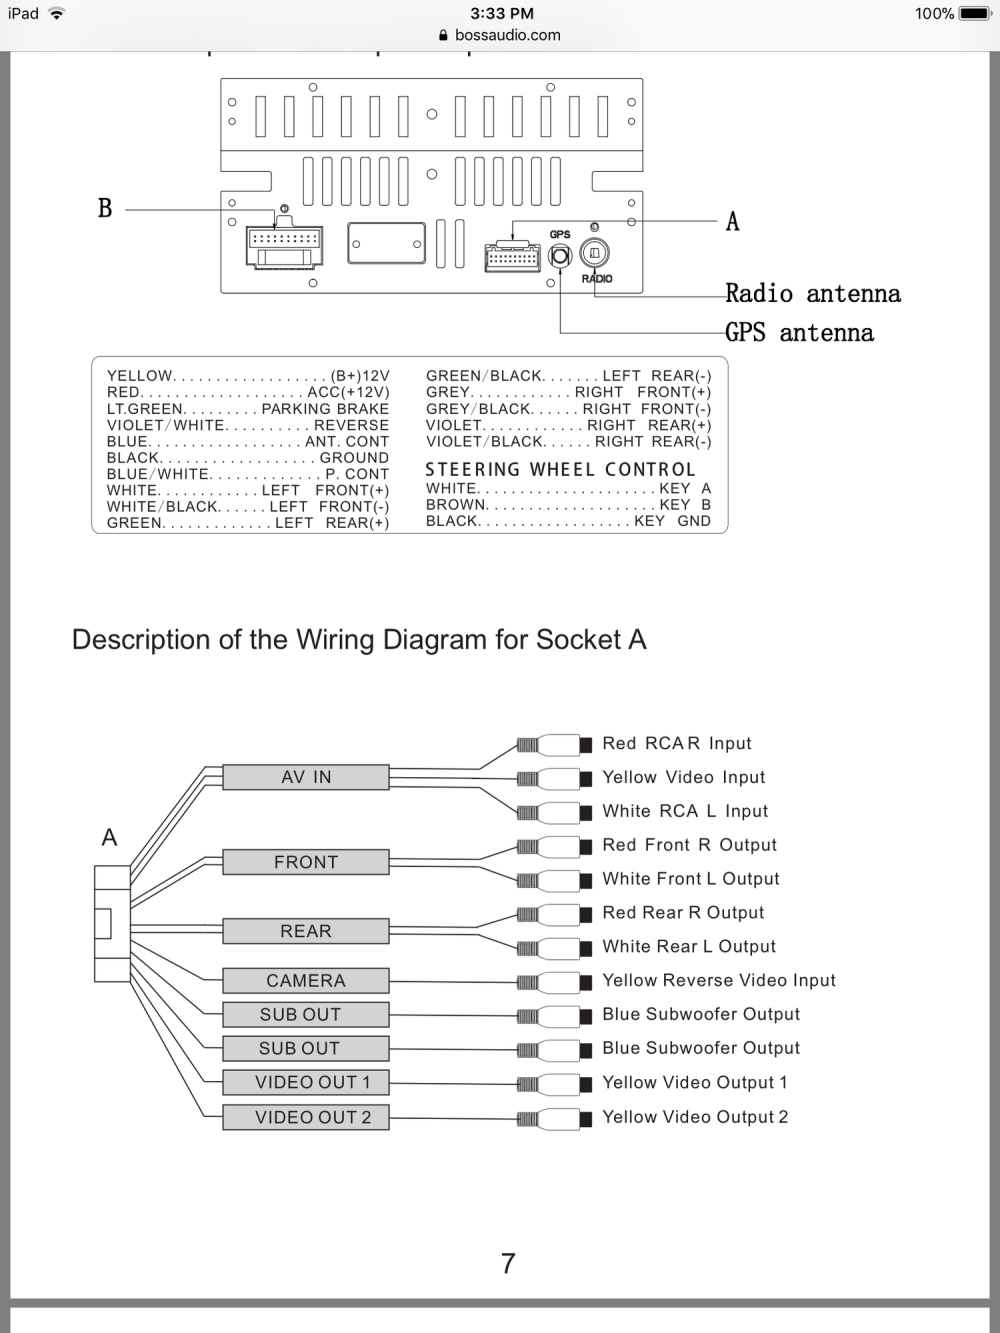 medium resolution of boss audio wiring diagram best site wiring harness boss bv9976 wiring harness diagram boss plow wiring harness diagram